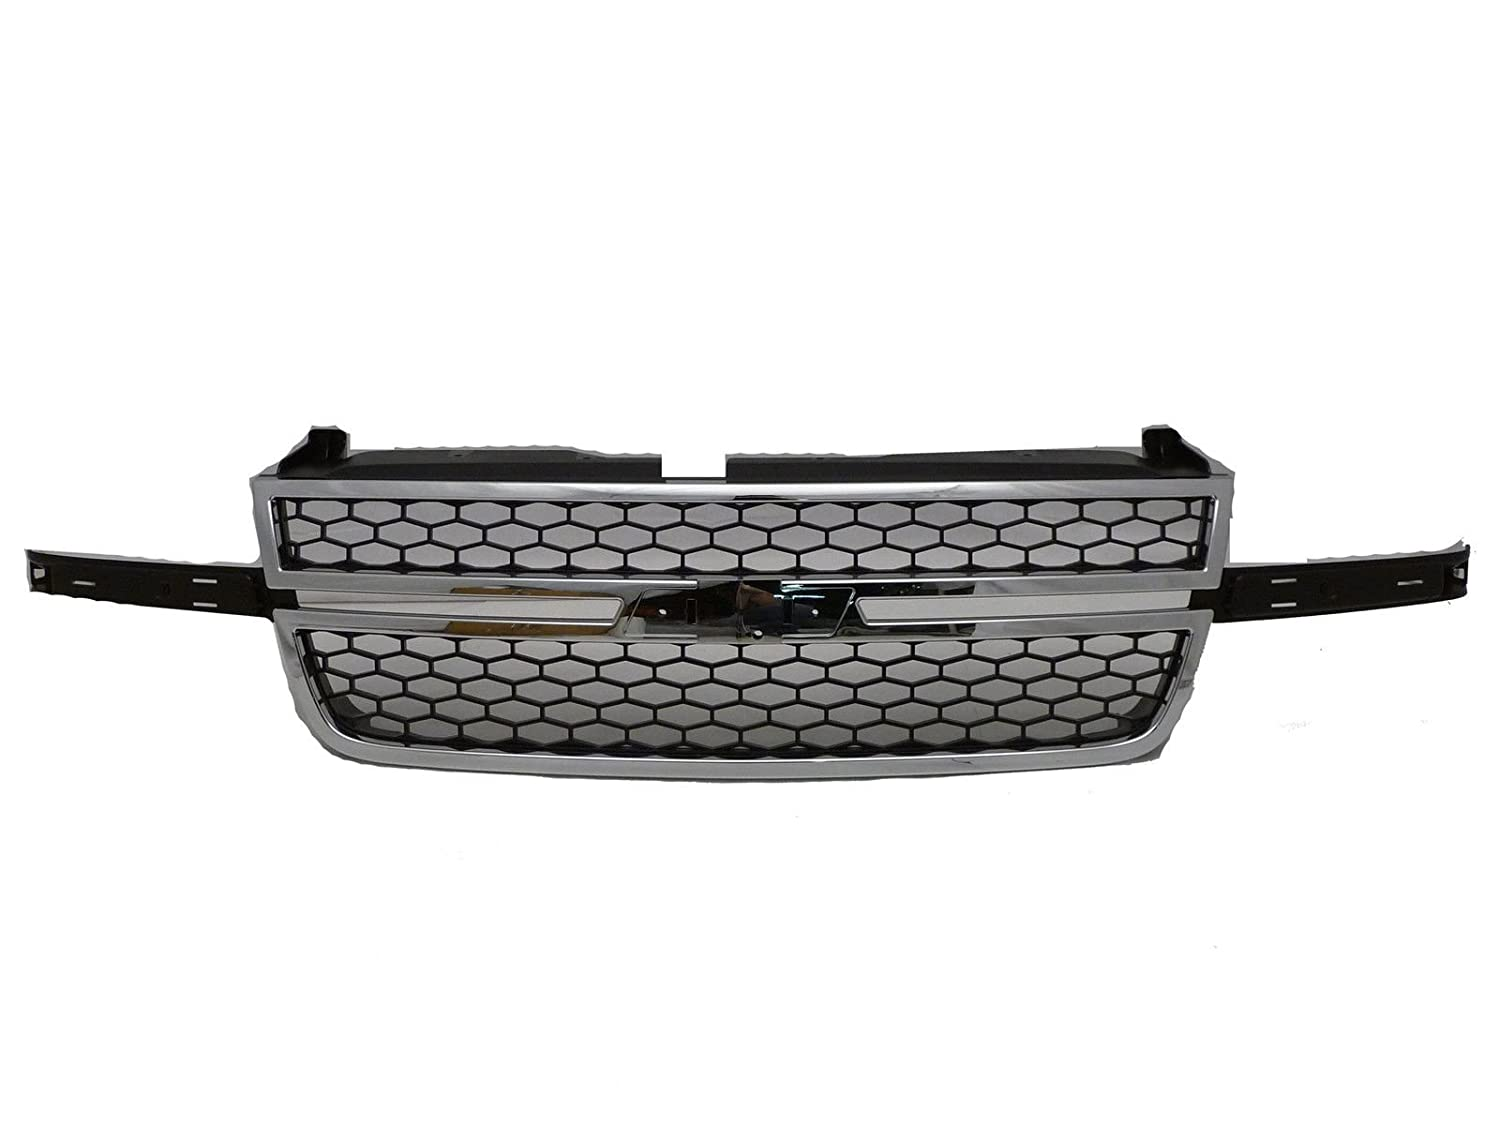 OE Replacement Chevrolet Silverado Pickup Grille Assembly Partslink Number GM1200546